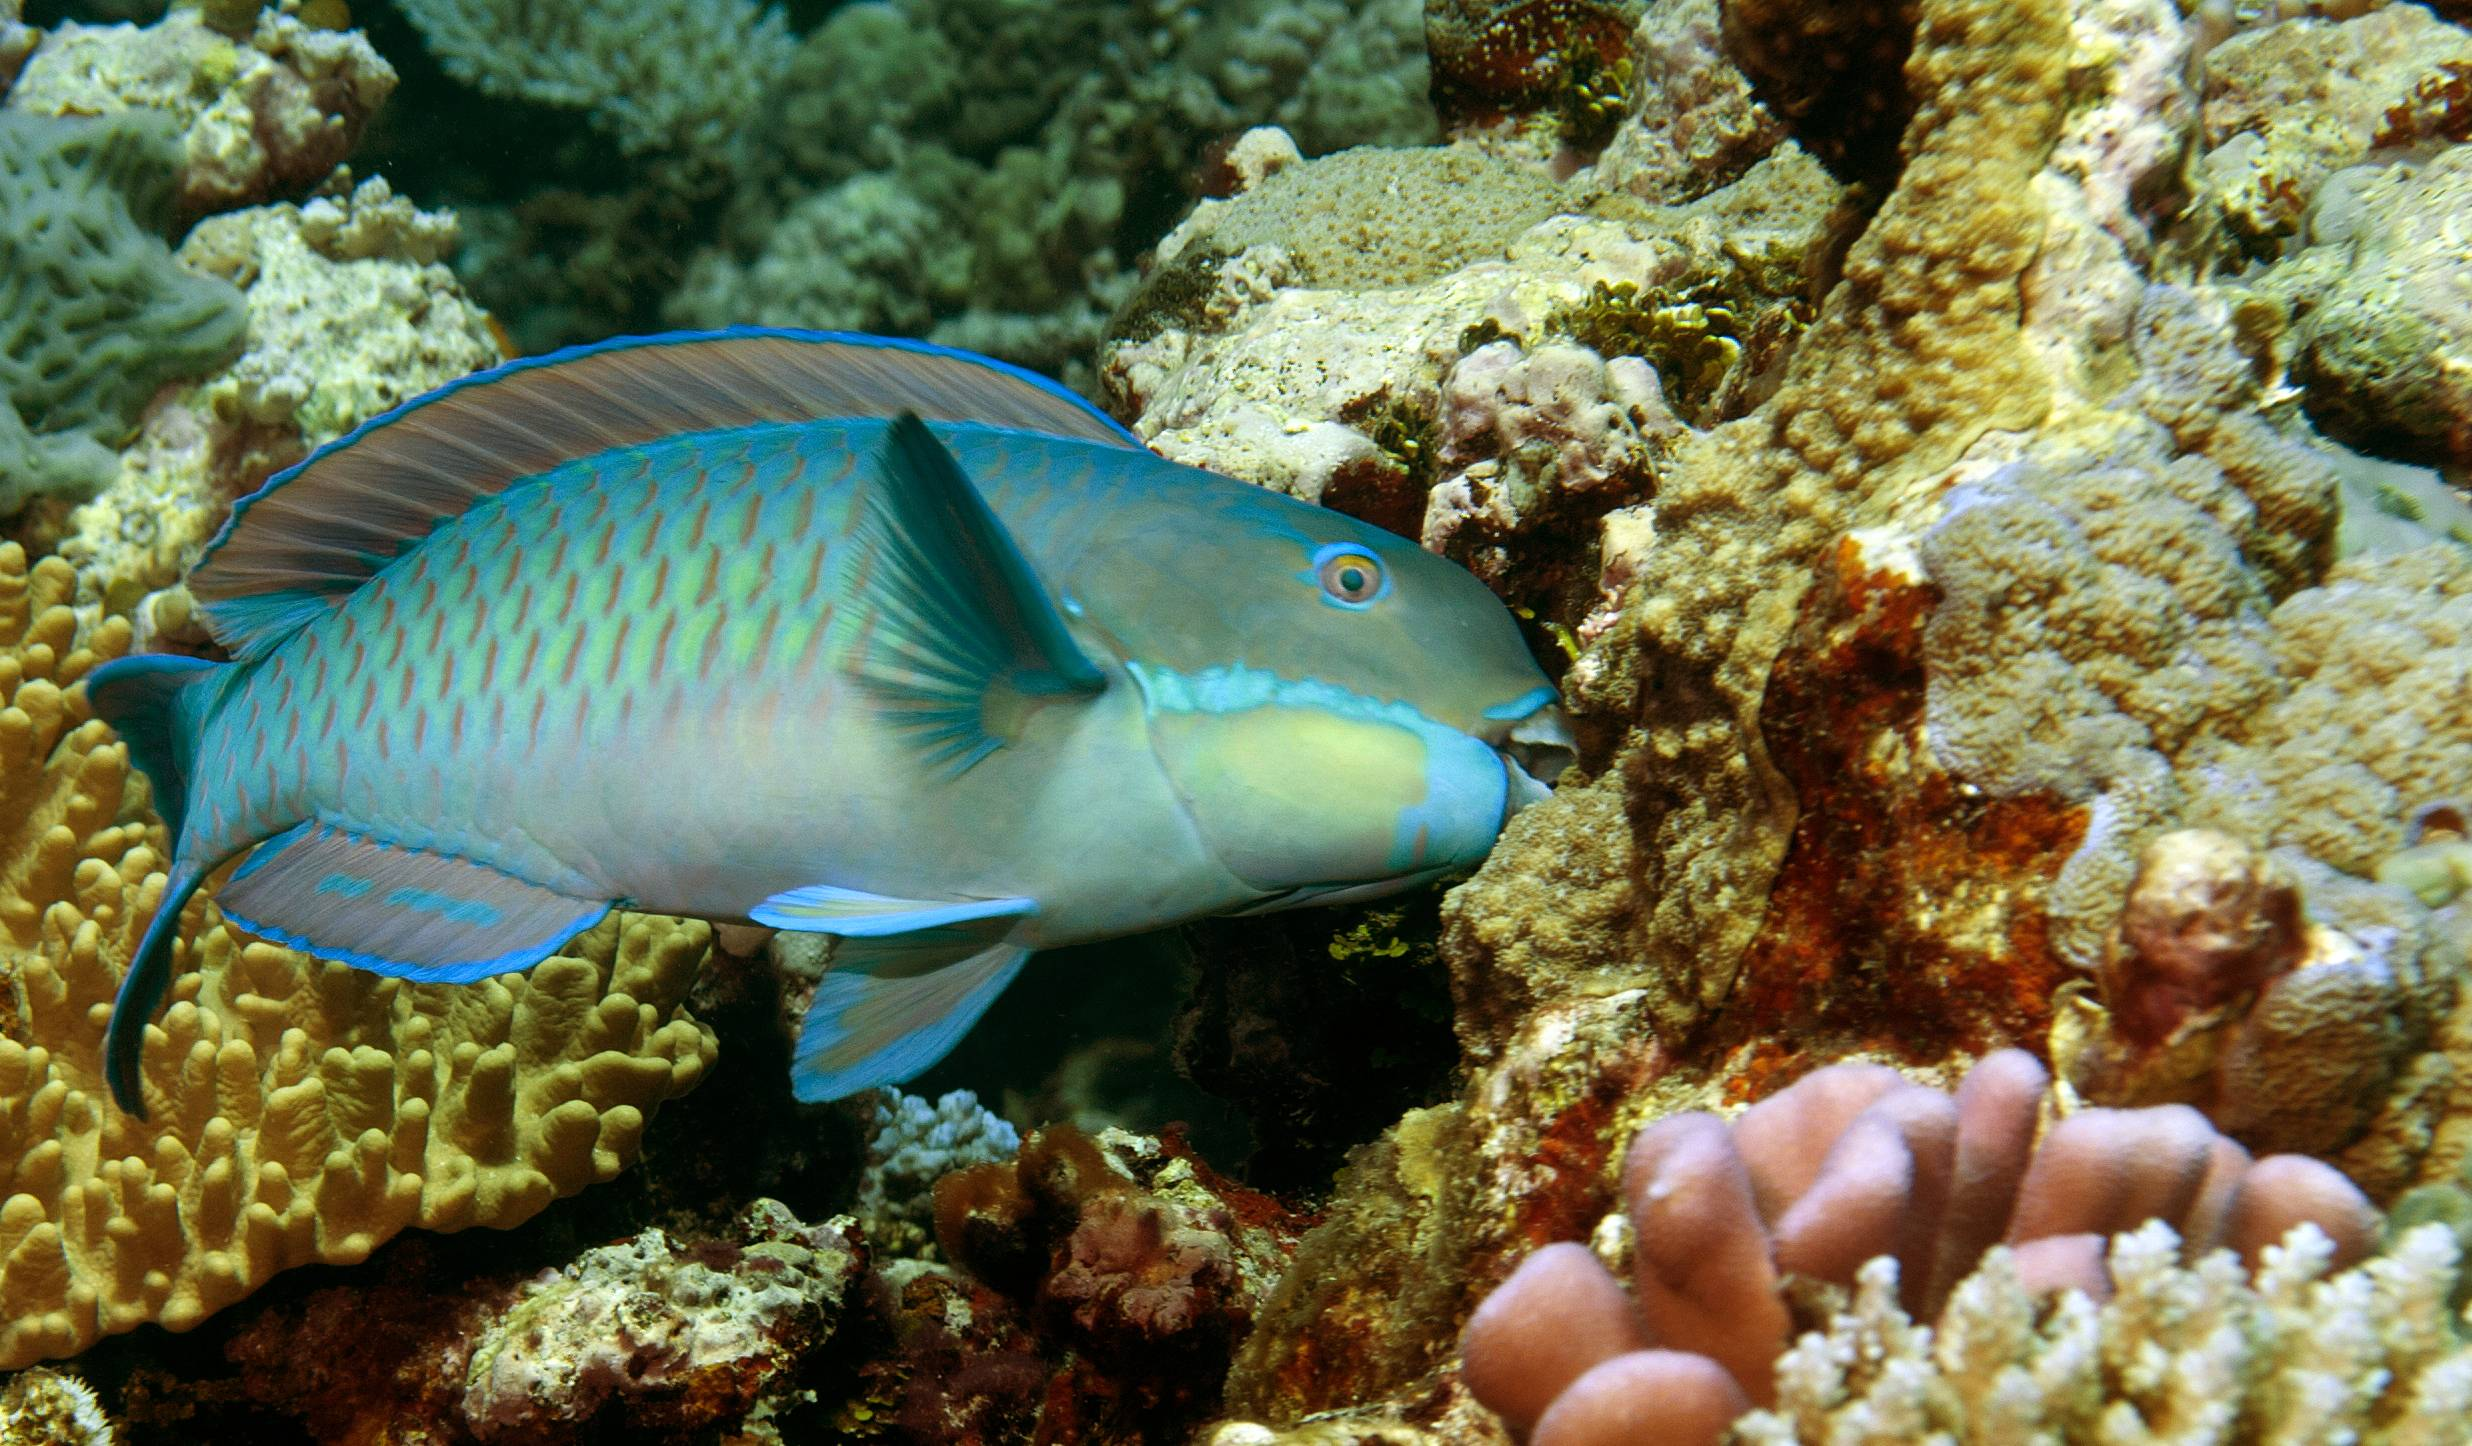 Parrotfish numbers rise as reef quality decreases. Credit: Kendall Clements